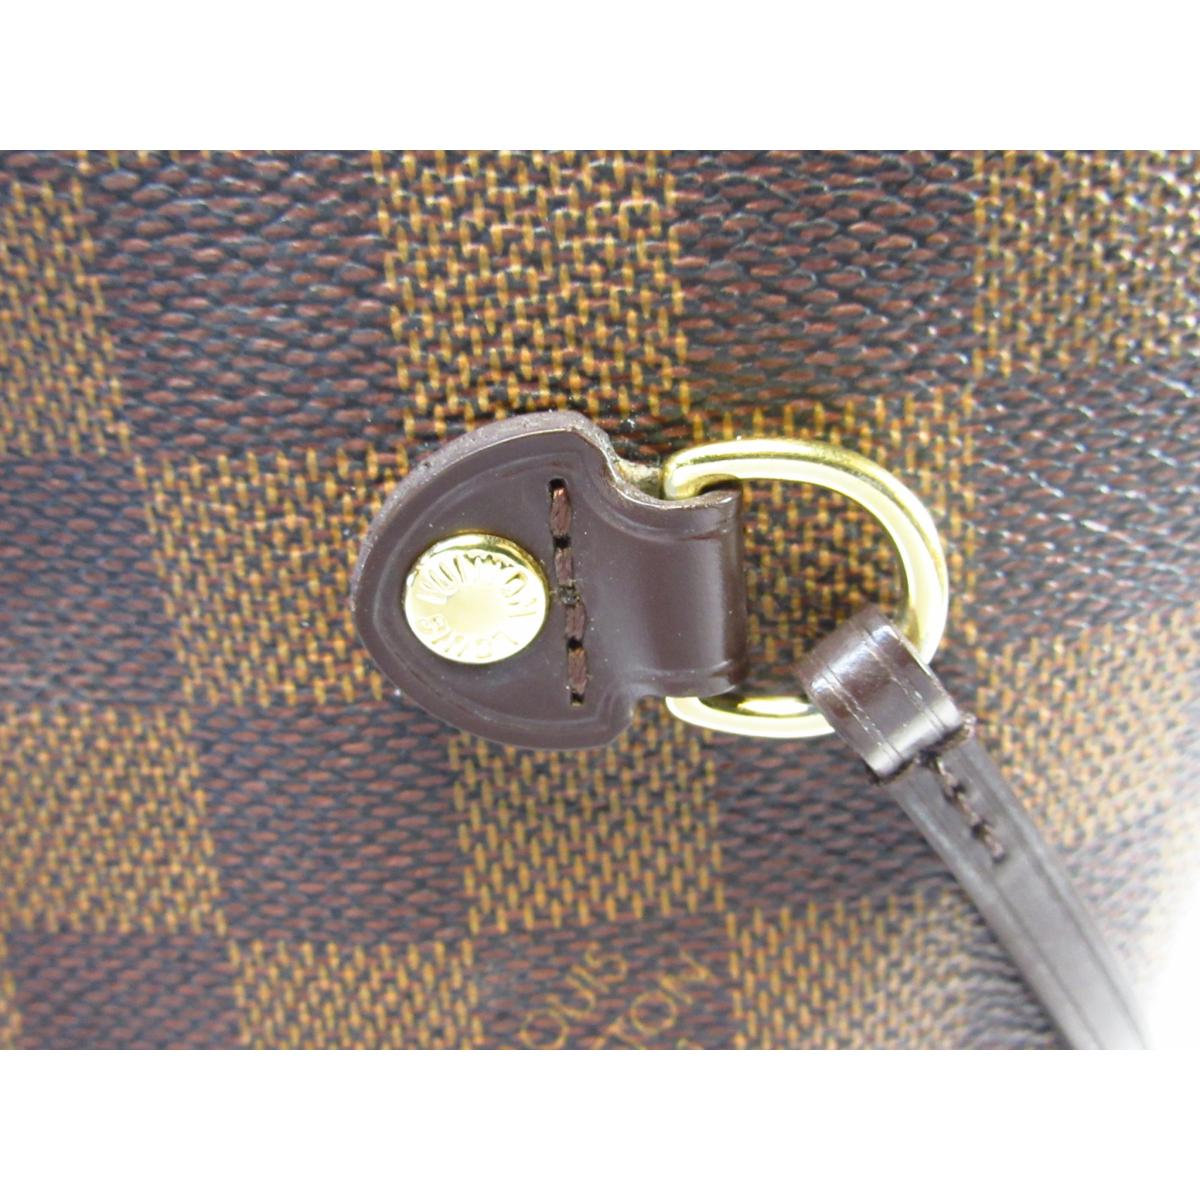 LOUIS VUITTON LOUIS VUITTON バッグ N51105 棋盤格肩背購物包 Never Full PM N51105